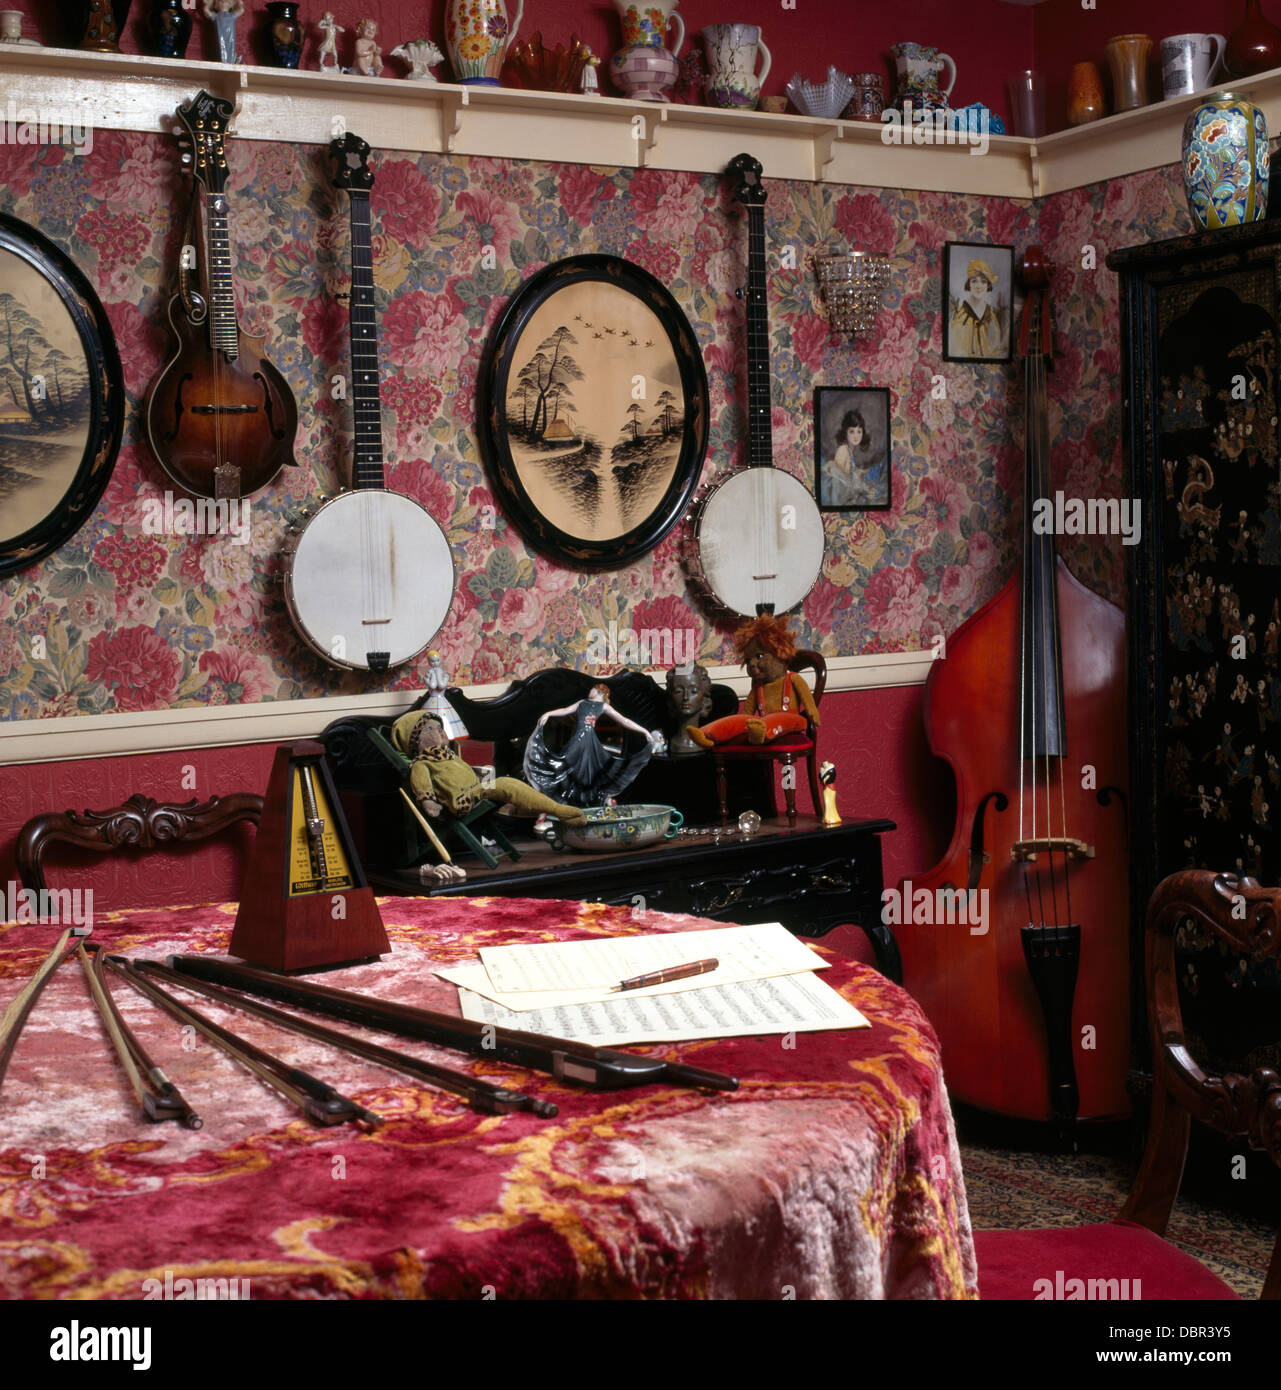 Collection of banjos on walls of small music room with dado rail and table with patterned red velvet cloth and double - Stock Image